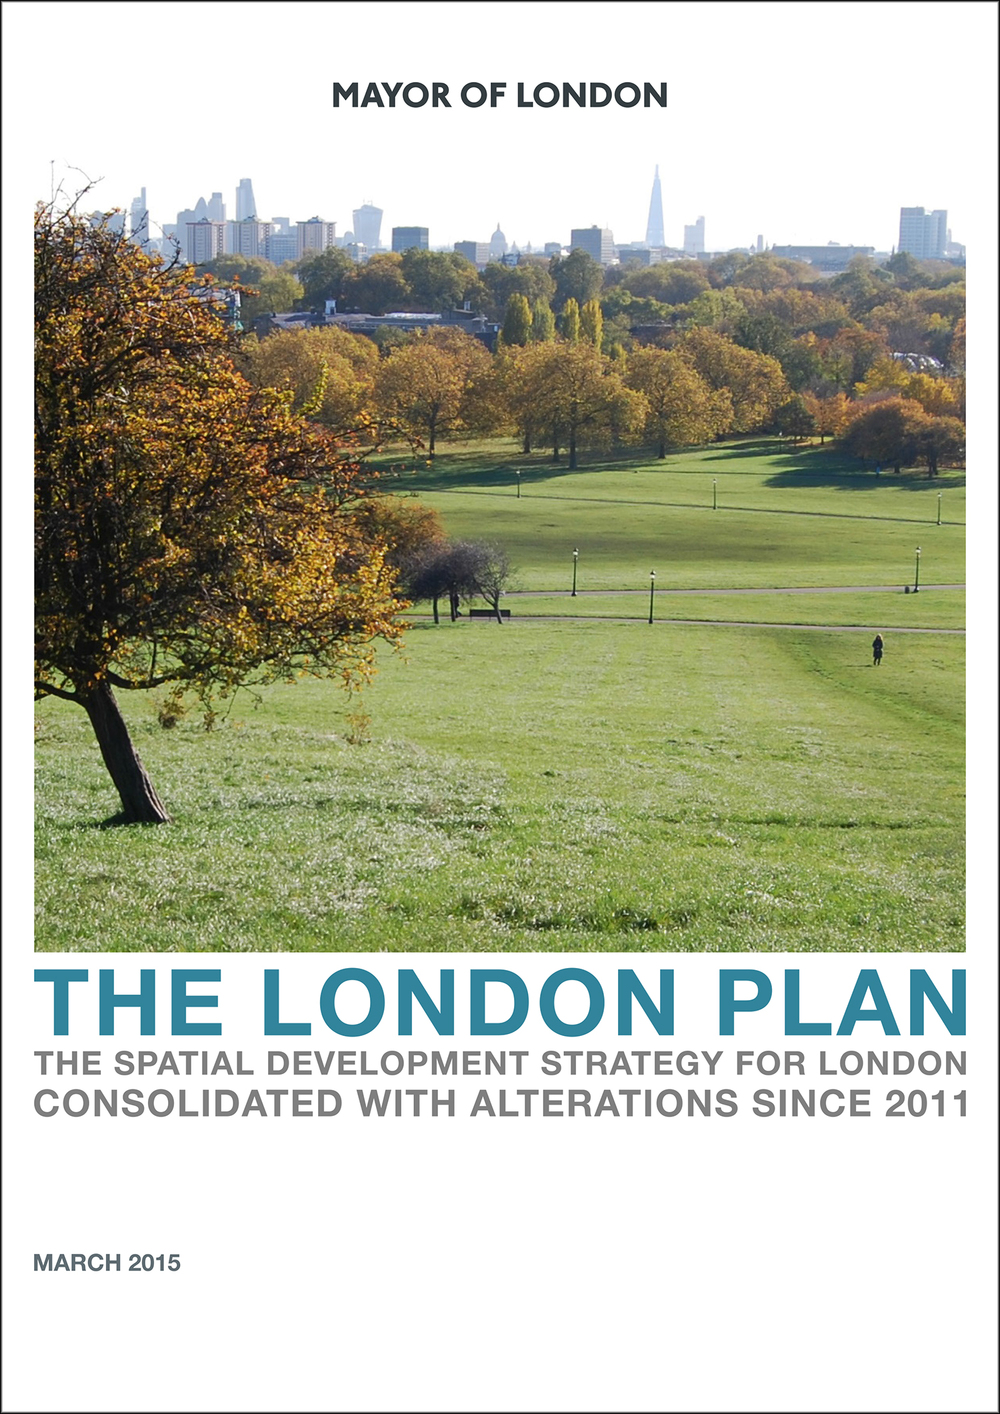 The London Plan - The Spatial Development Strategy for London Consolidated with Alterations Since 2011.